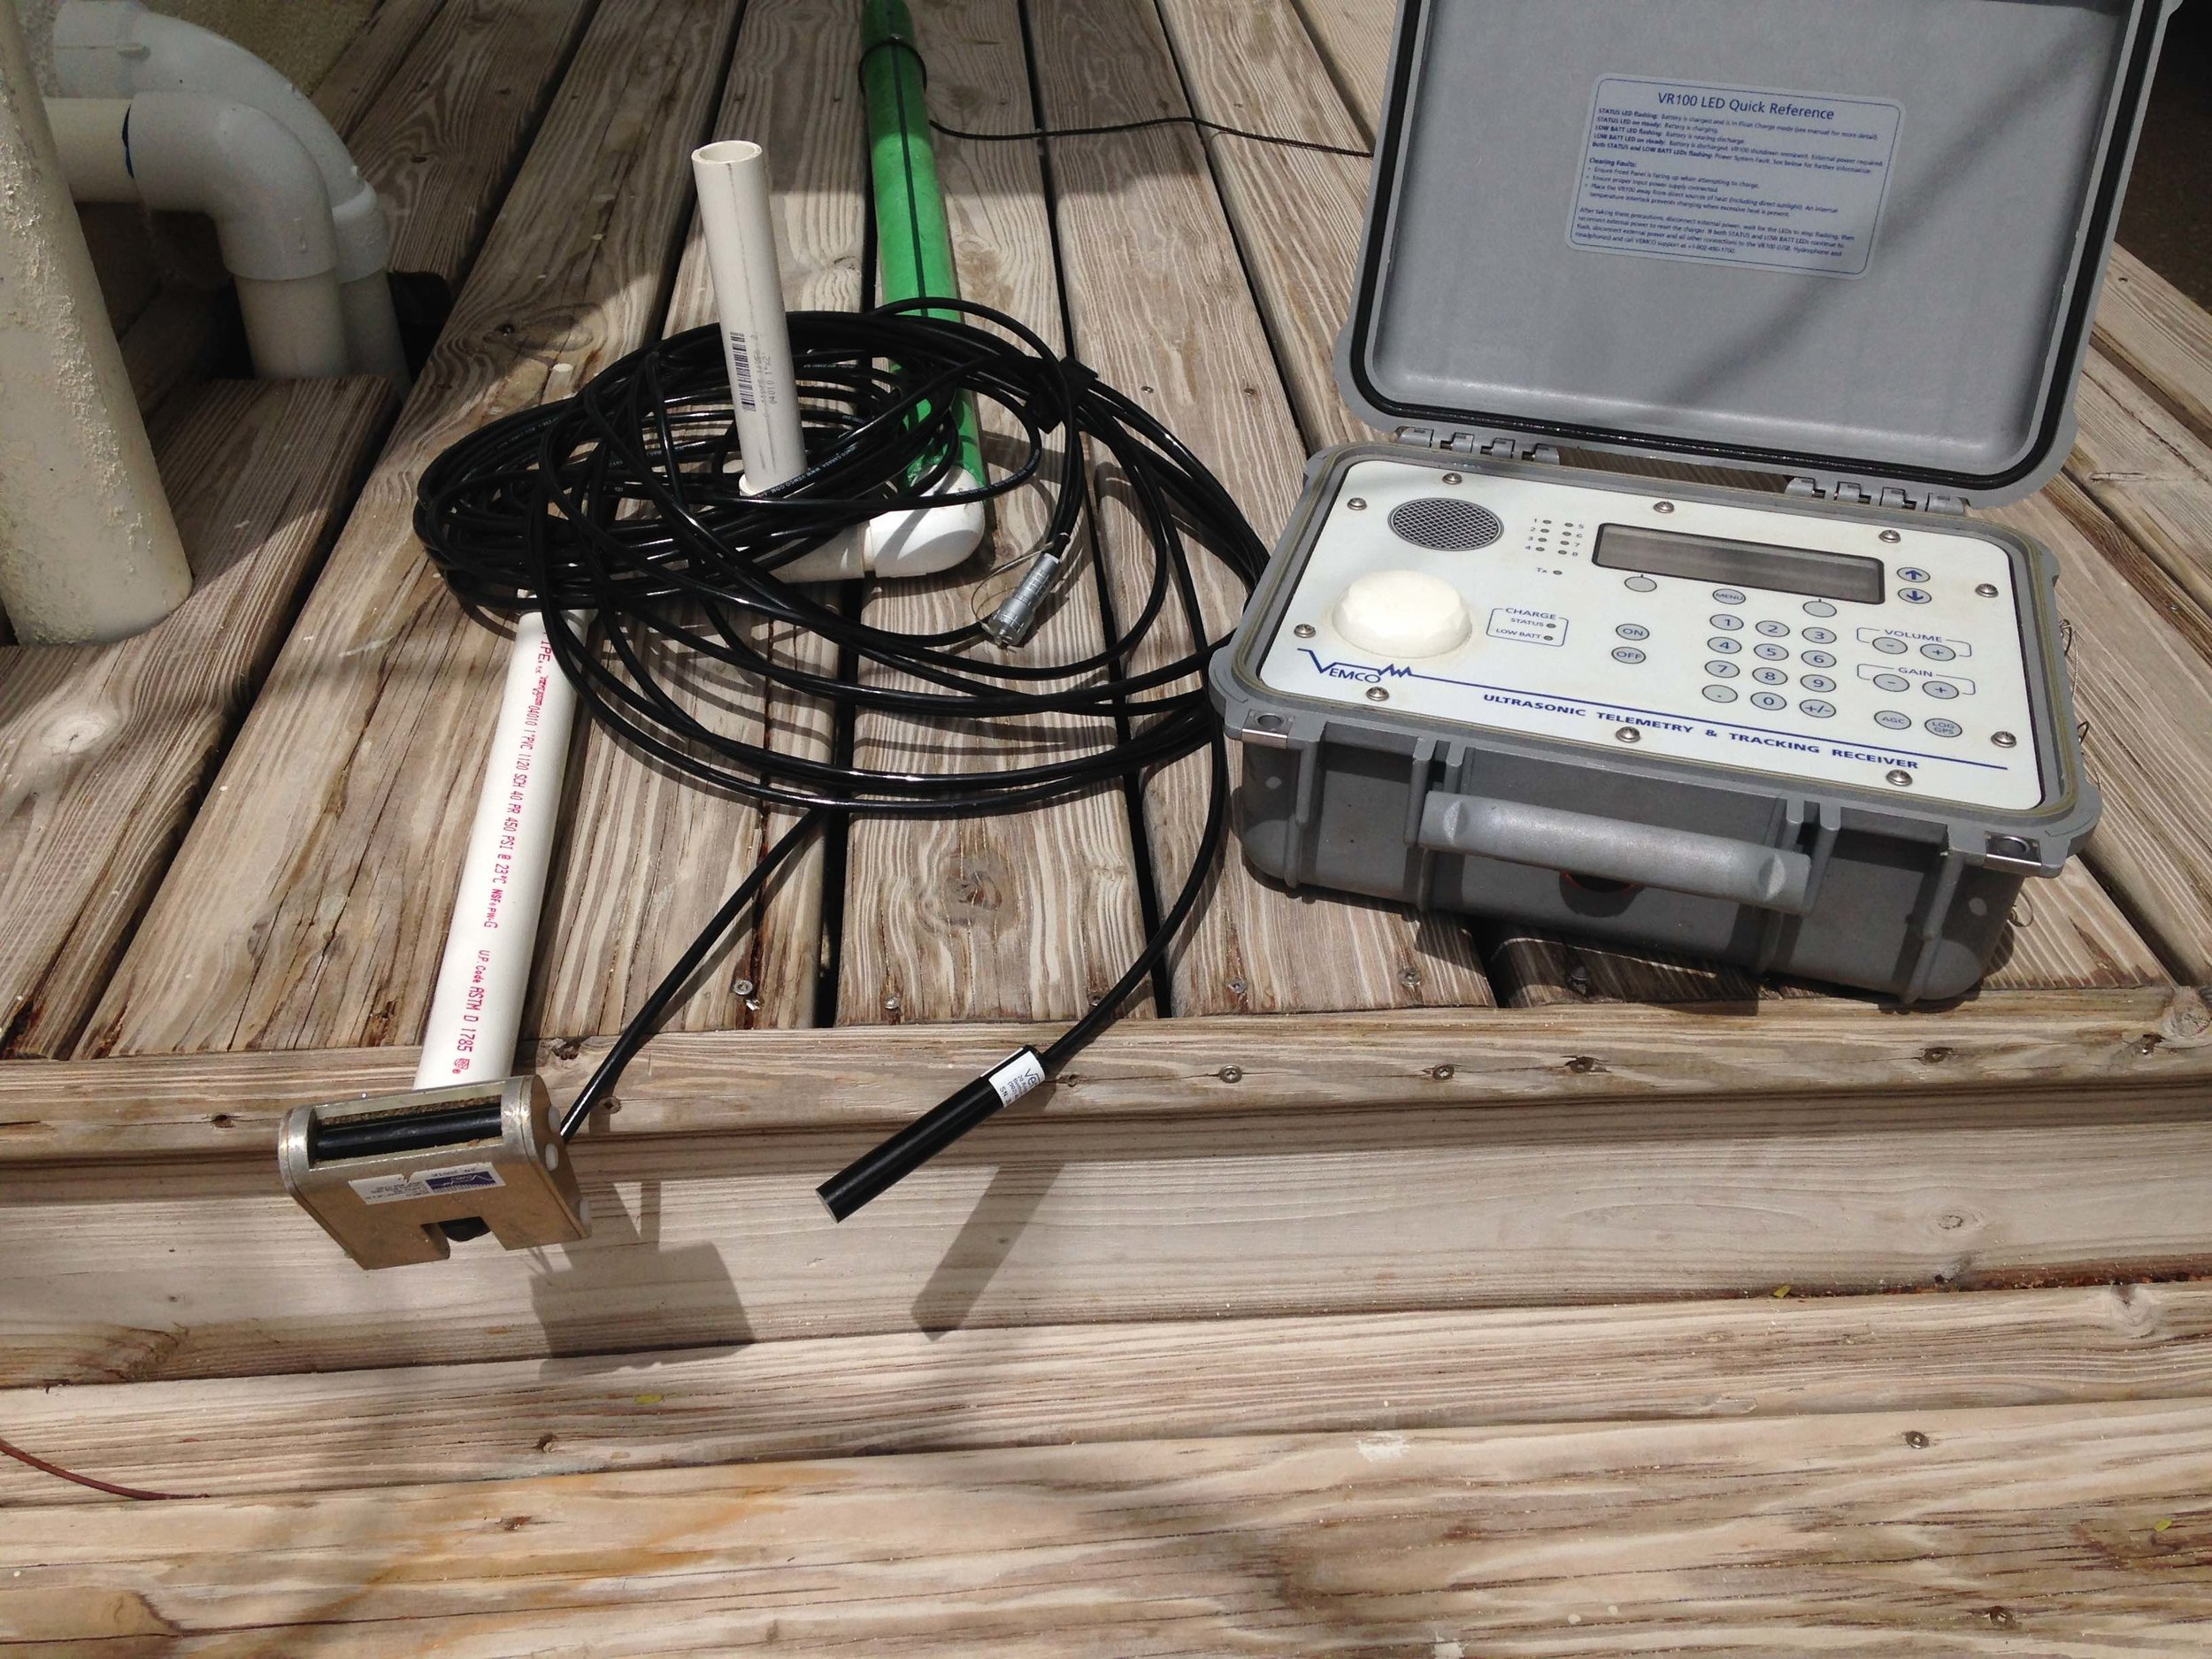 Directional and omnidirectional hydrophone are used with the VR100 receiver to track bonefish